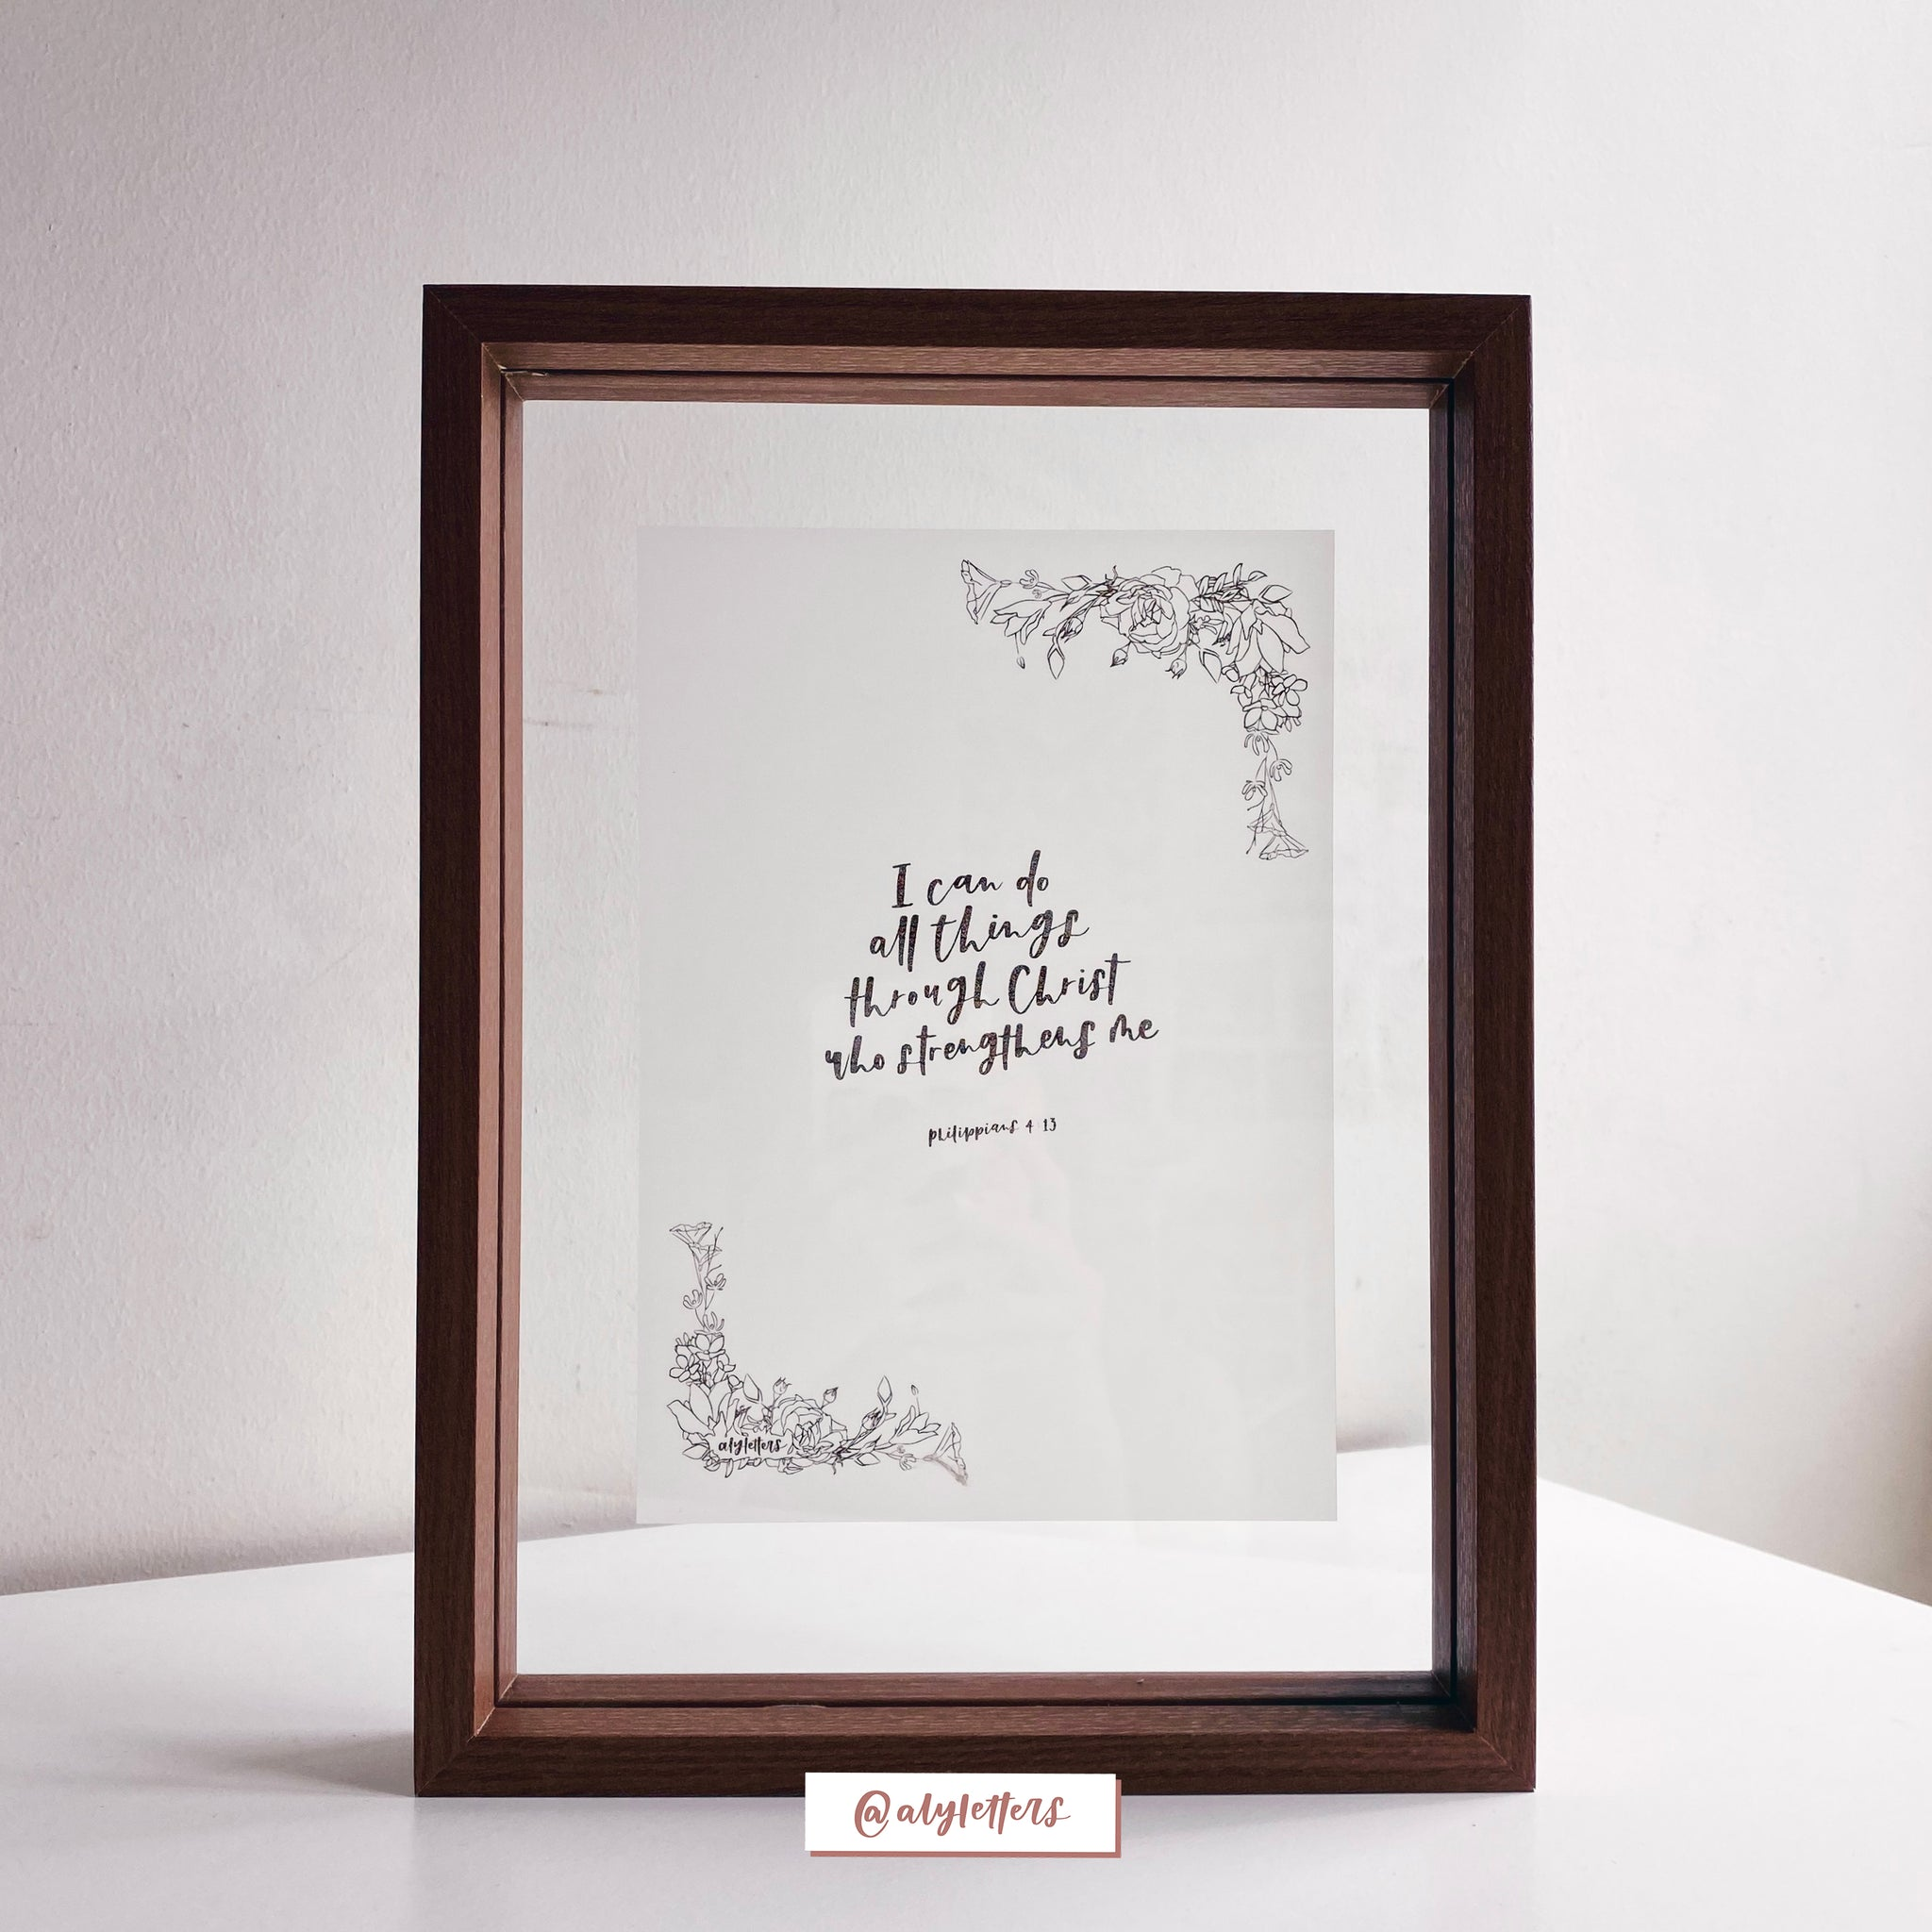 Vellum Artwork in Floating Frame